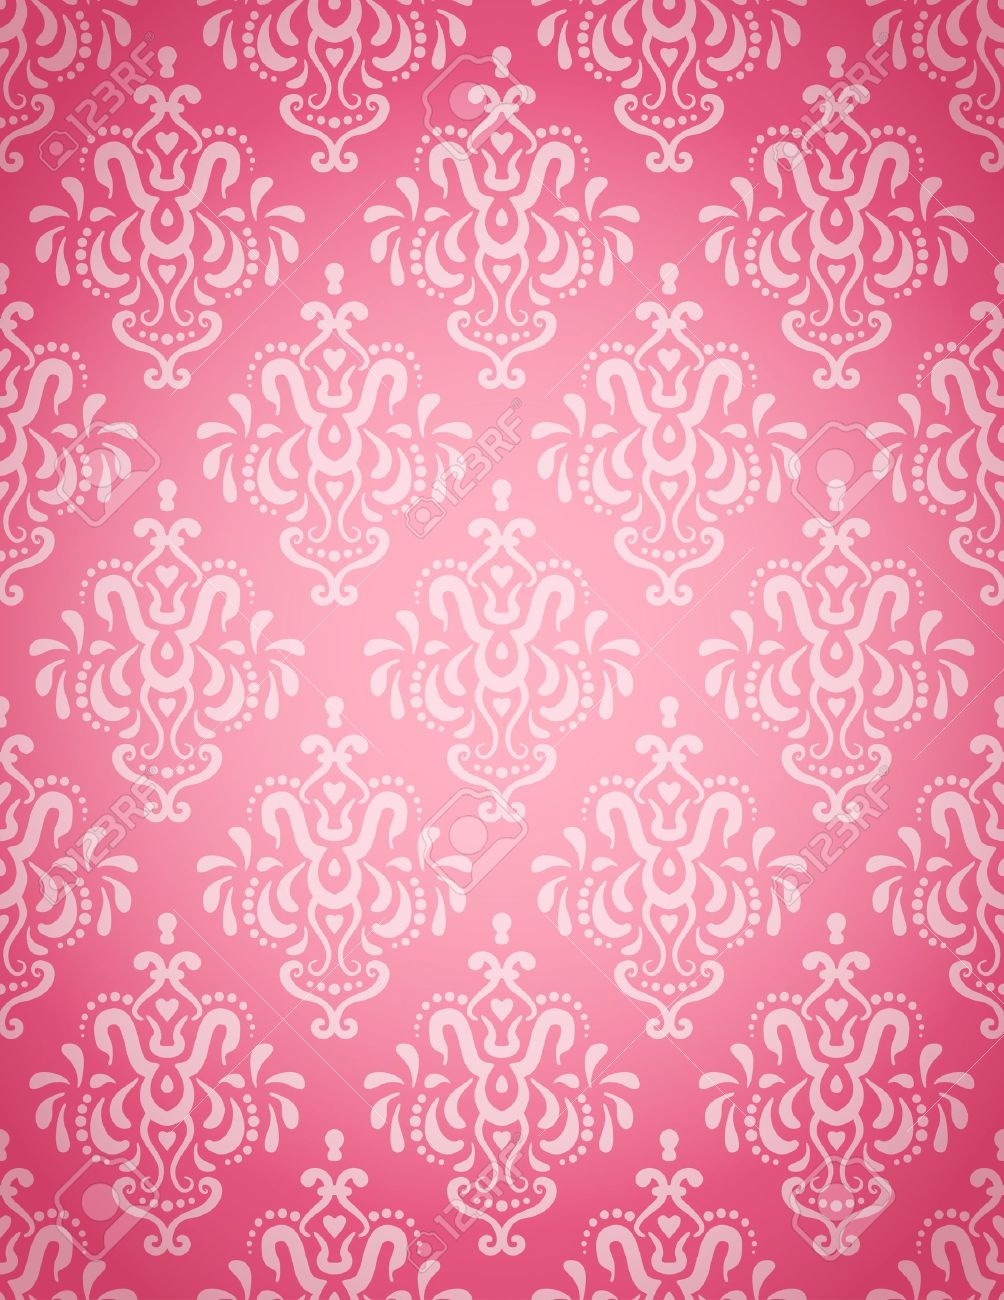 download light pink patterned wallpaper gallery